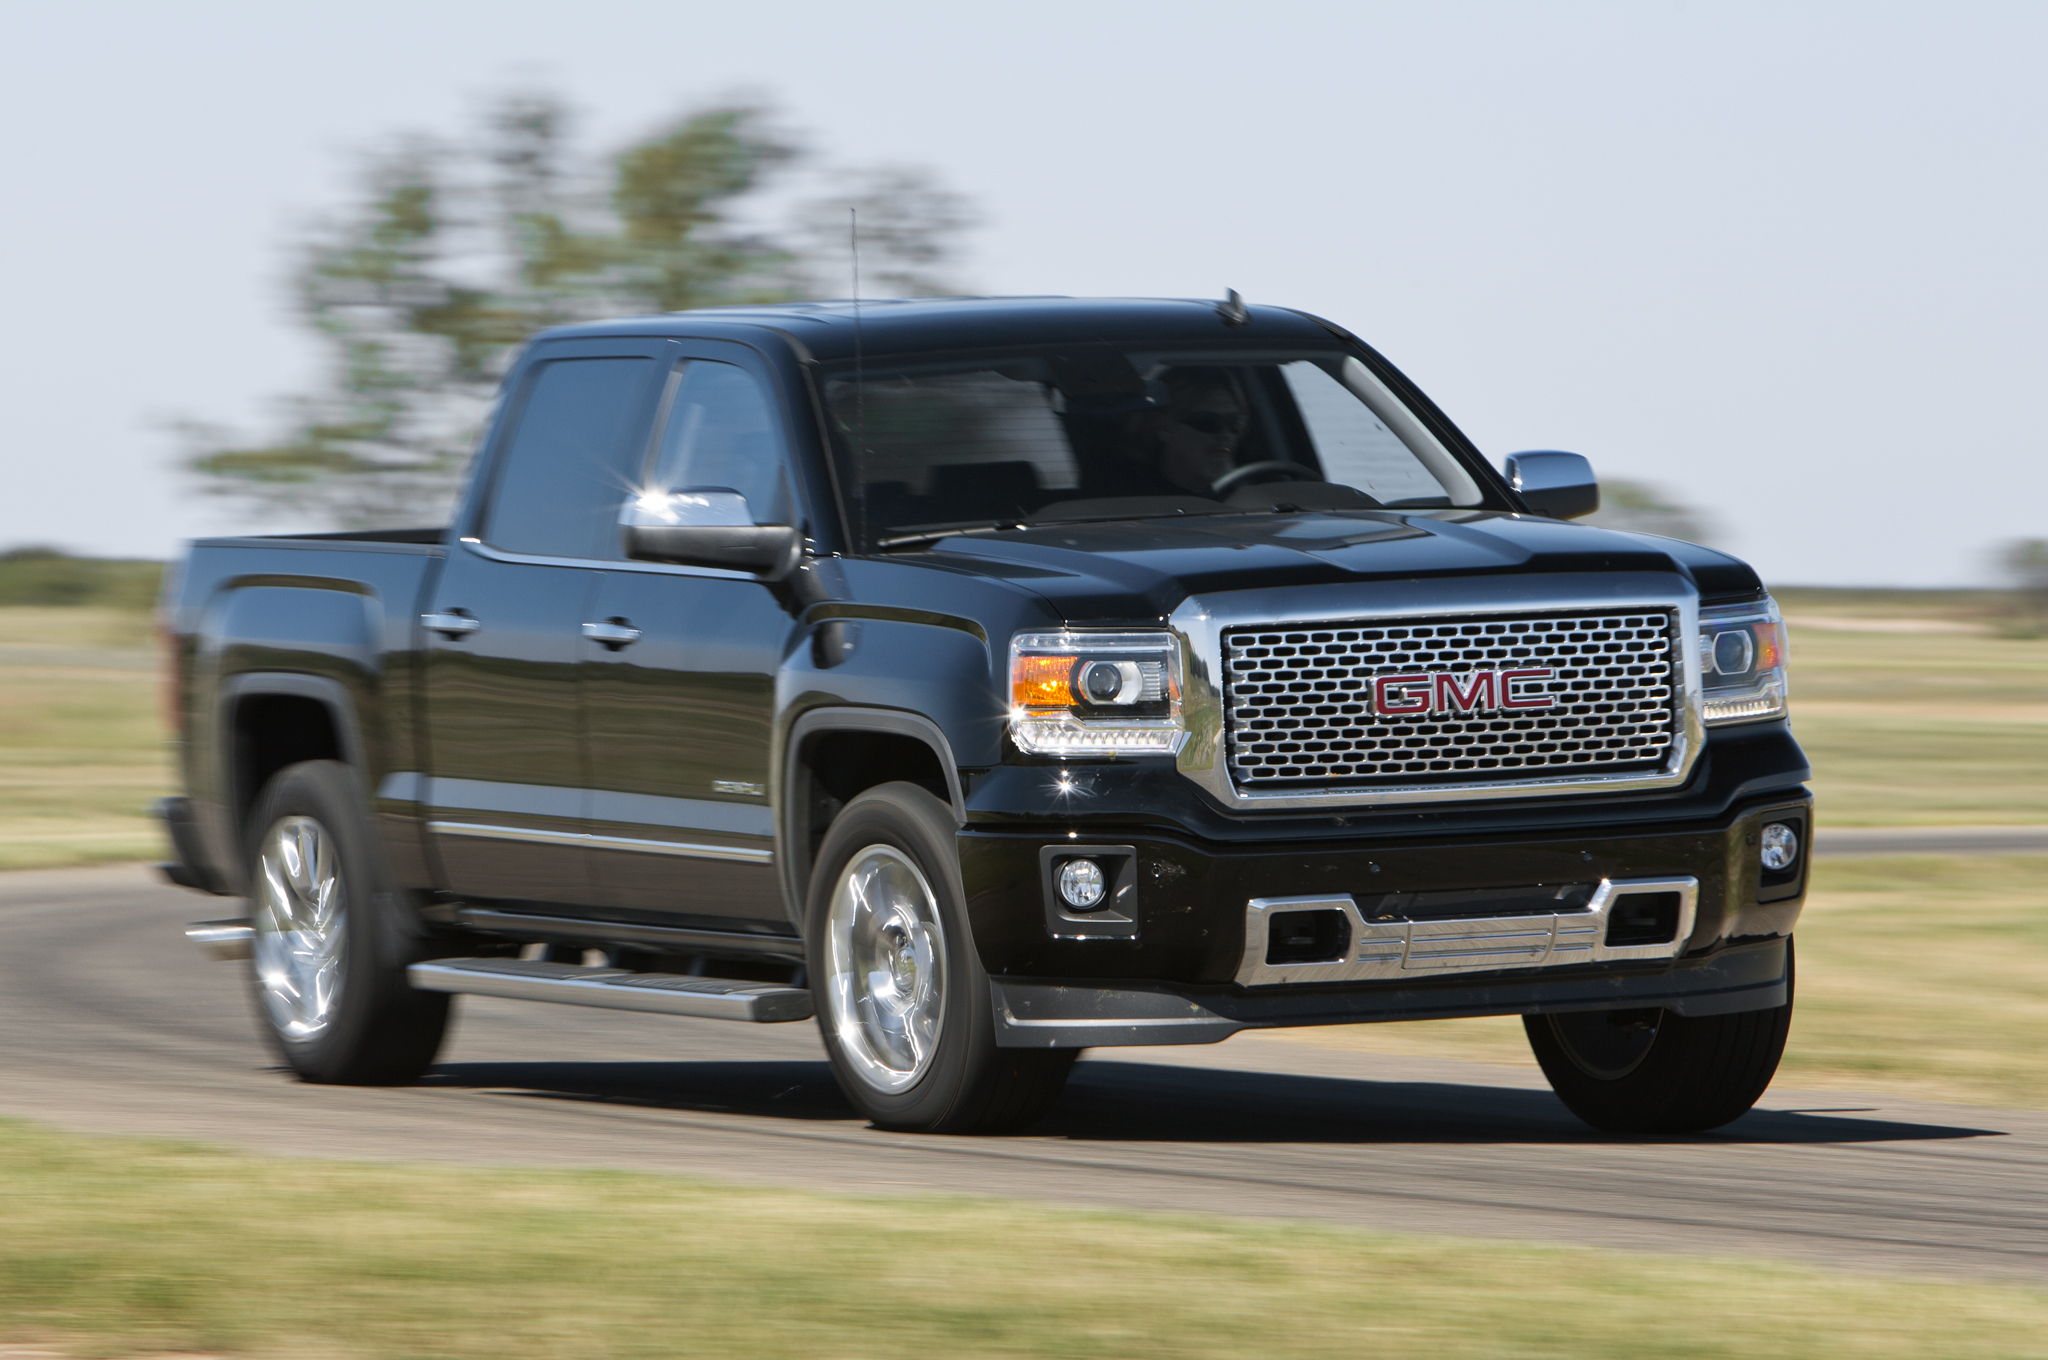 2018 GMC Sierra photo - 1